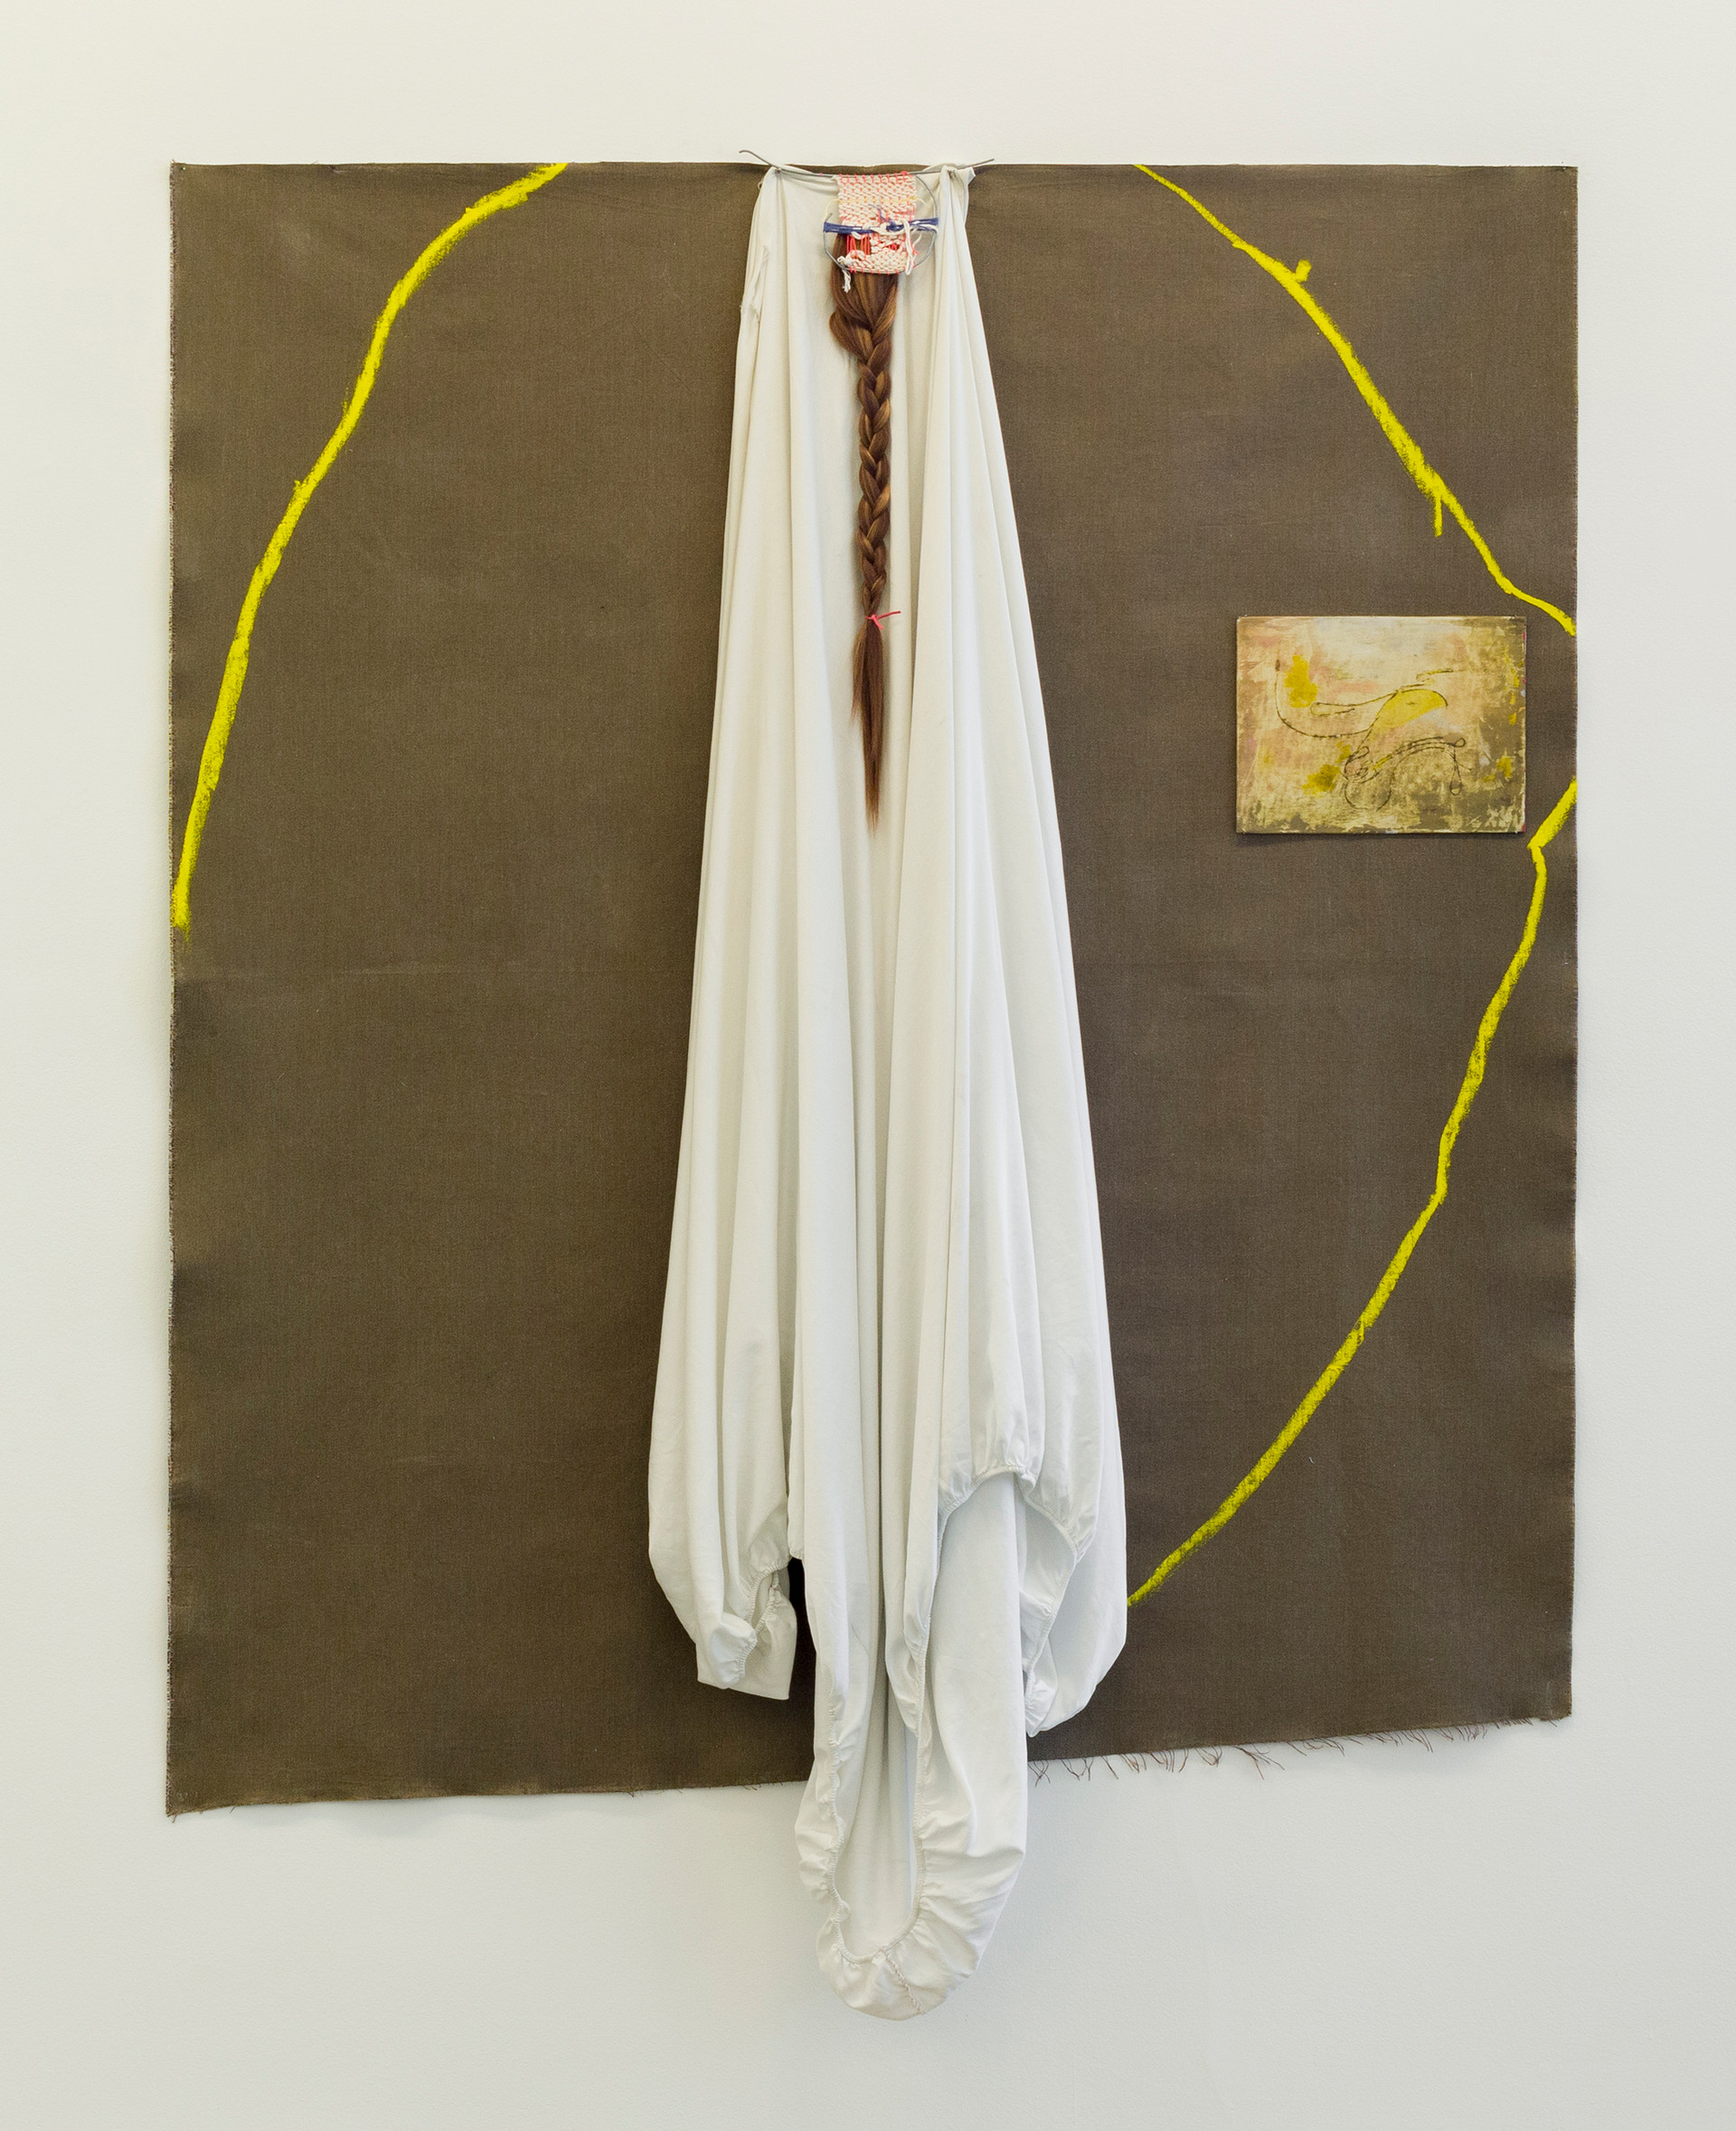 Veil, 2017 | Bedsheet, oil, tapestry and braids on canvas | 198 x 149 x 20 cm | Group Show at Fortes D'Aloia & Gabriel Gallery